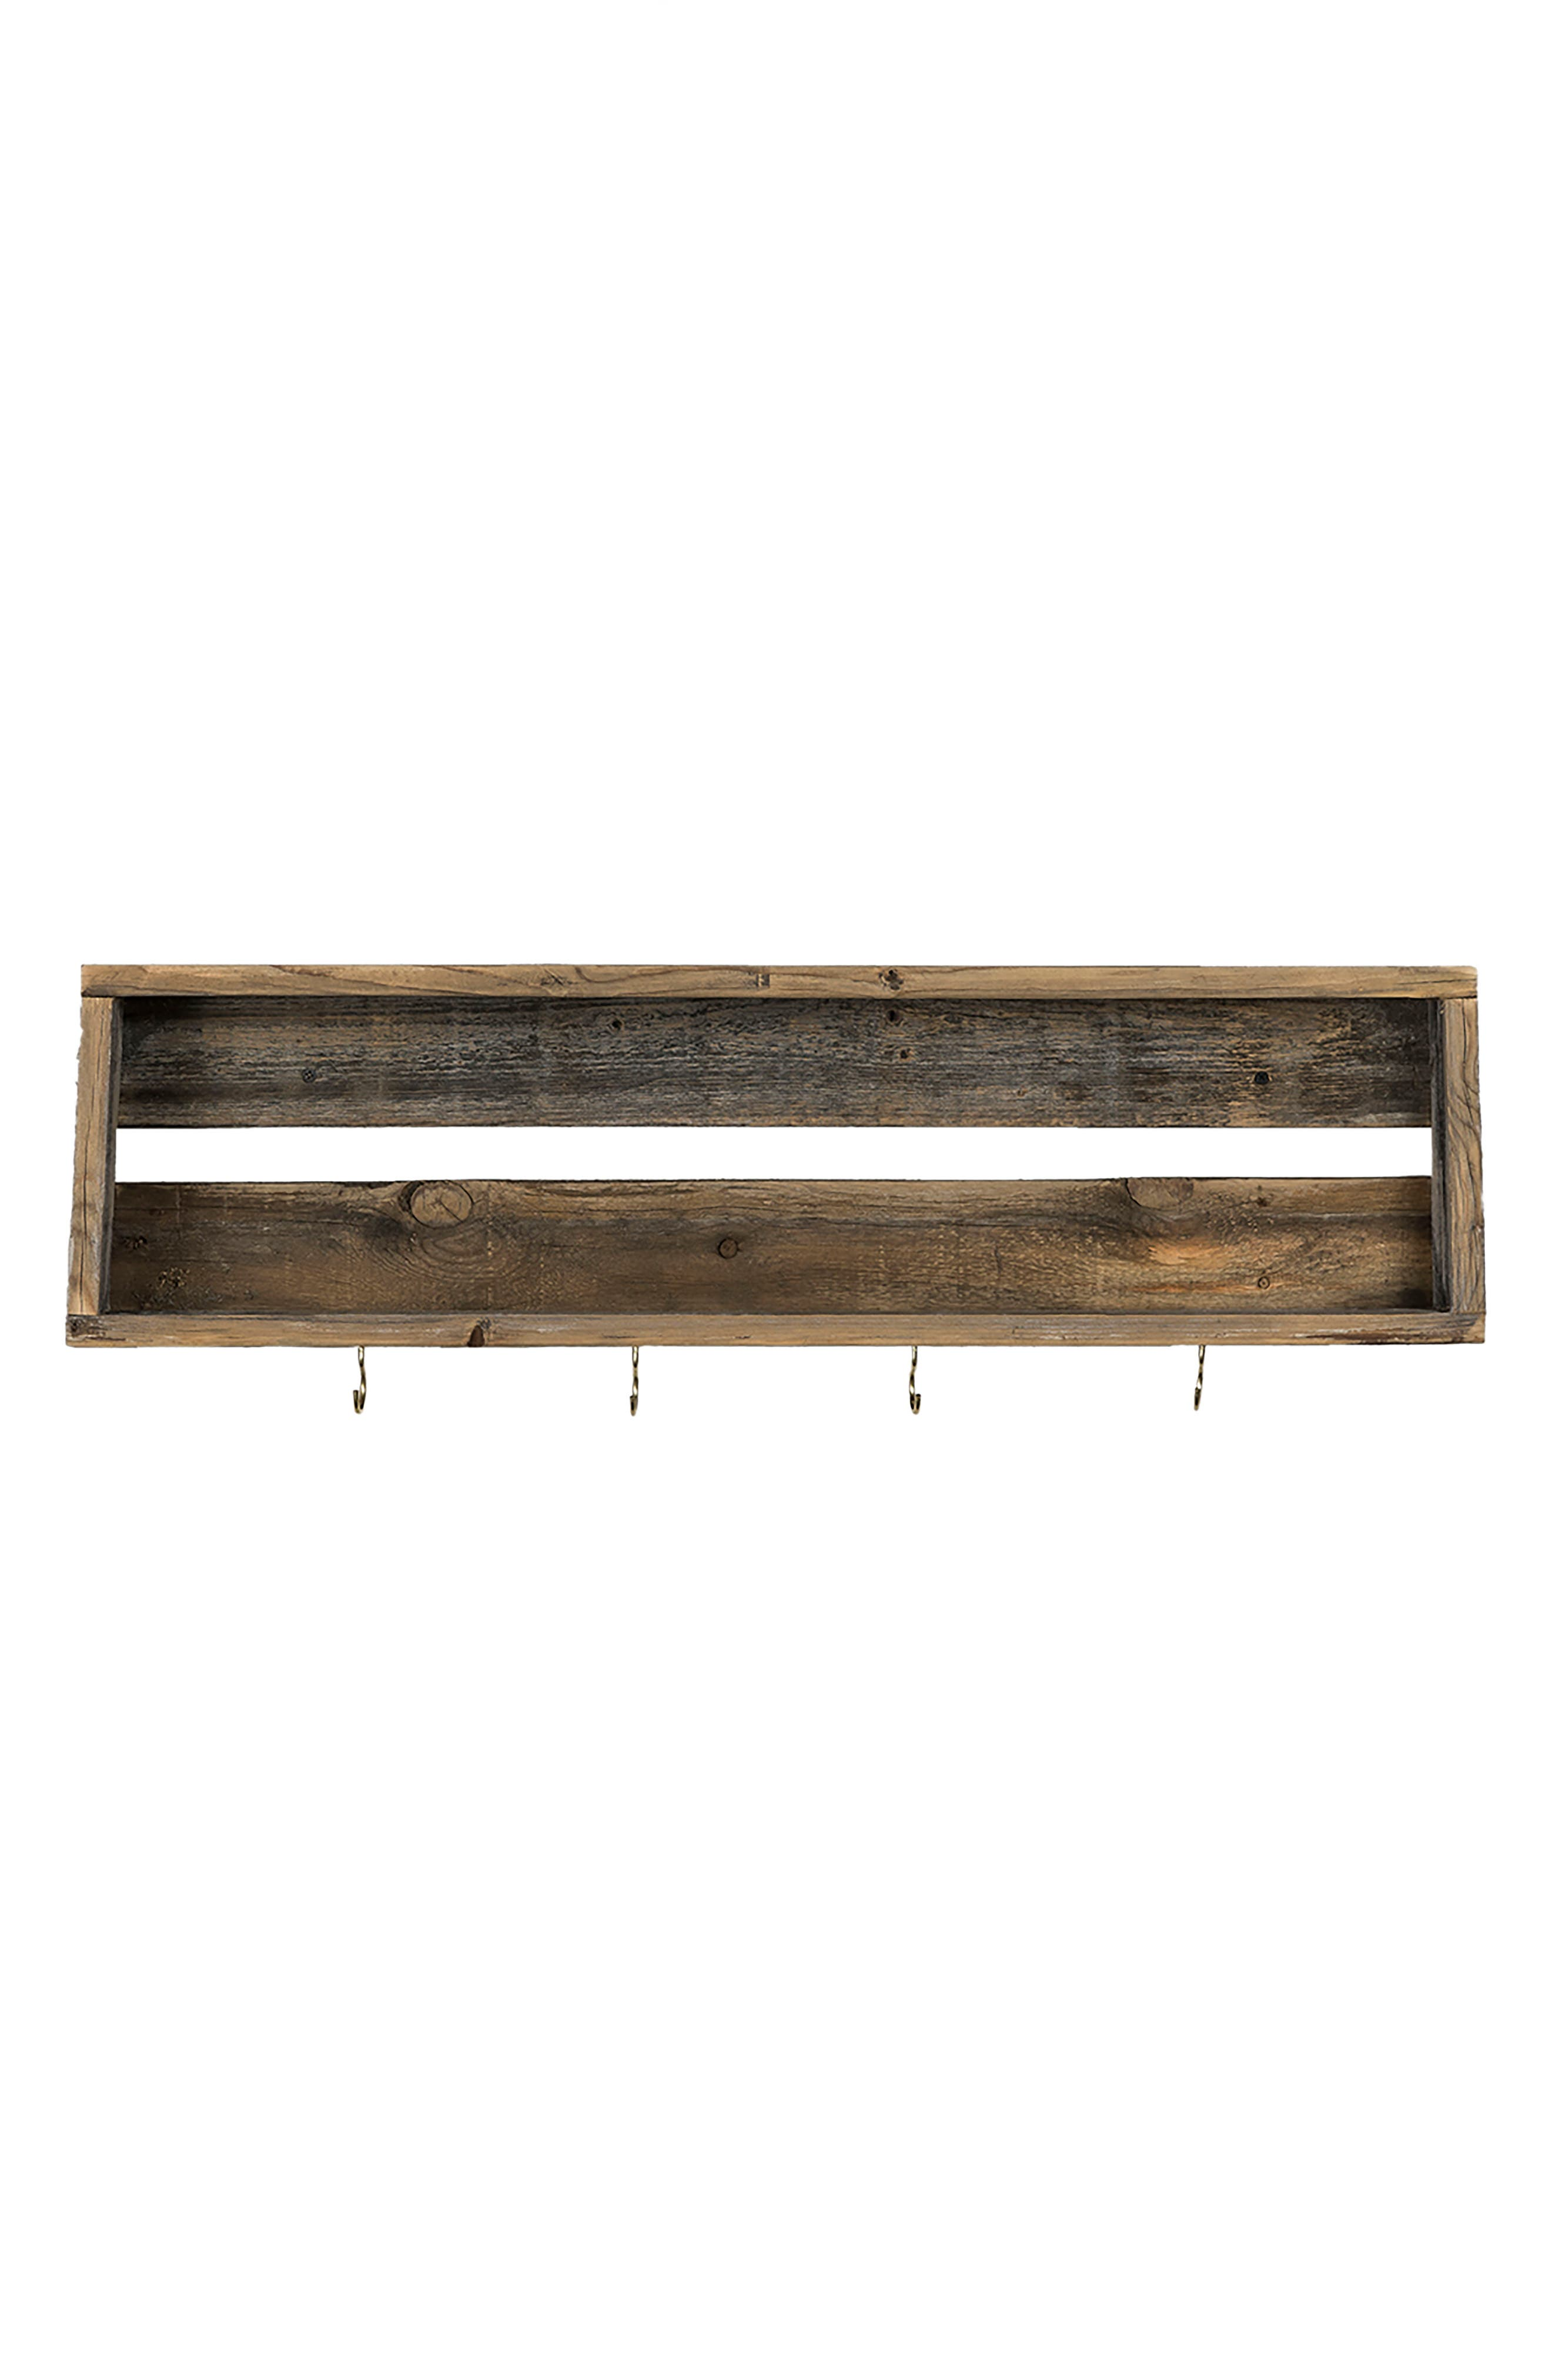 Main Image - (del)Hutson Designs Repurposed Wood Shelf with Hooks